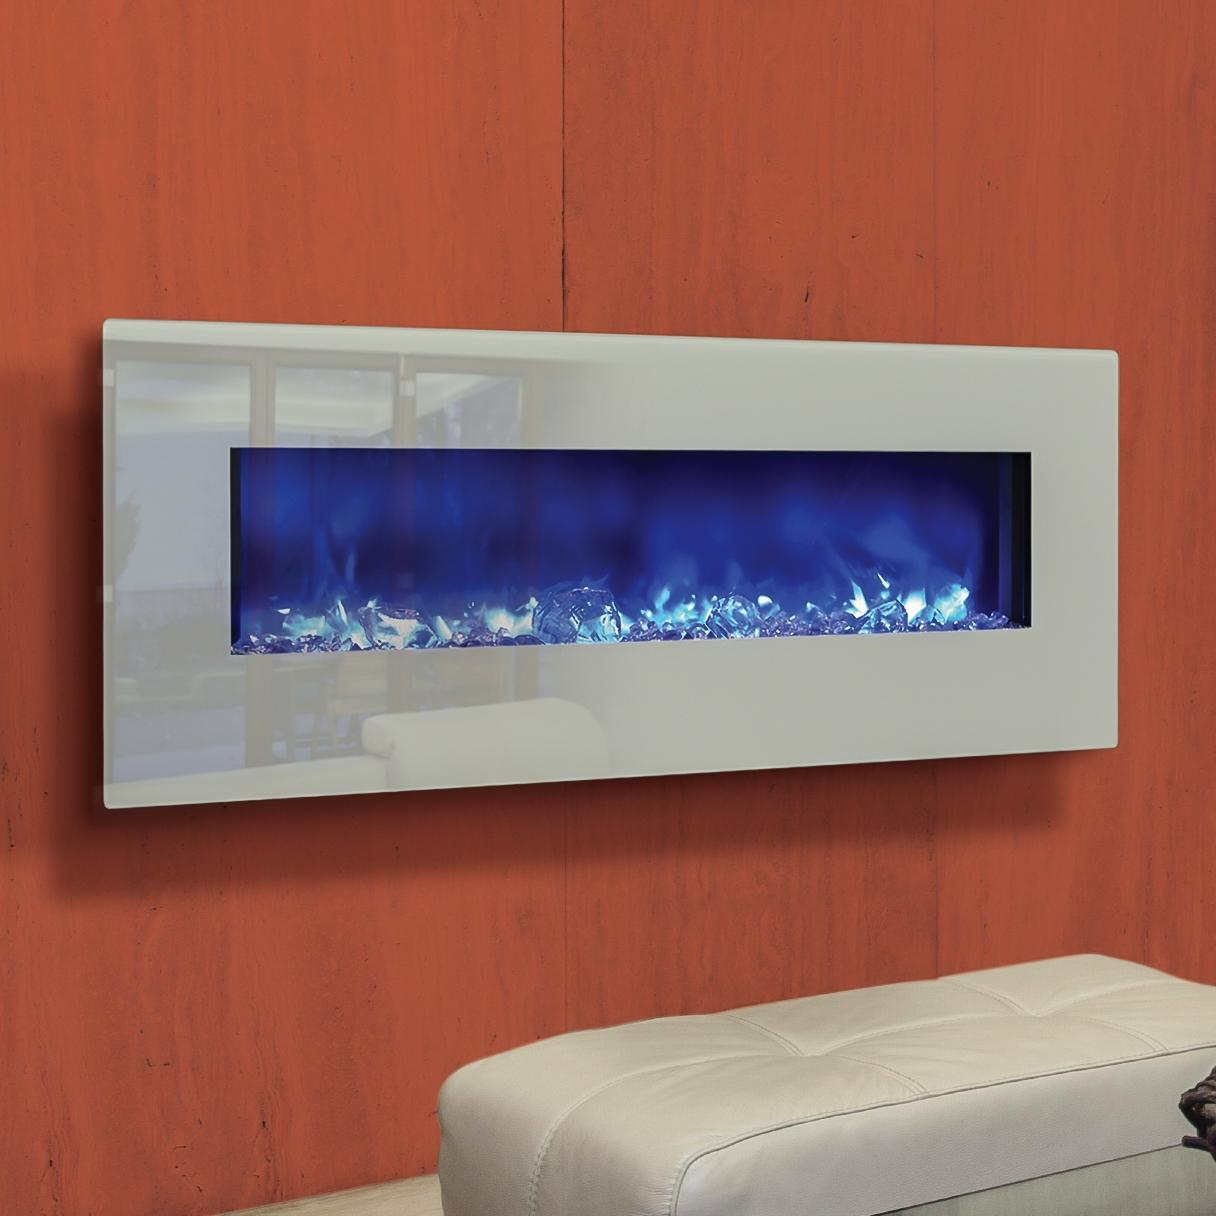 Electric Fireplace Built Into Wall Amantii Fire Ice Series 48